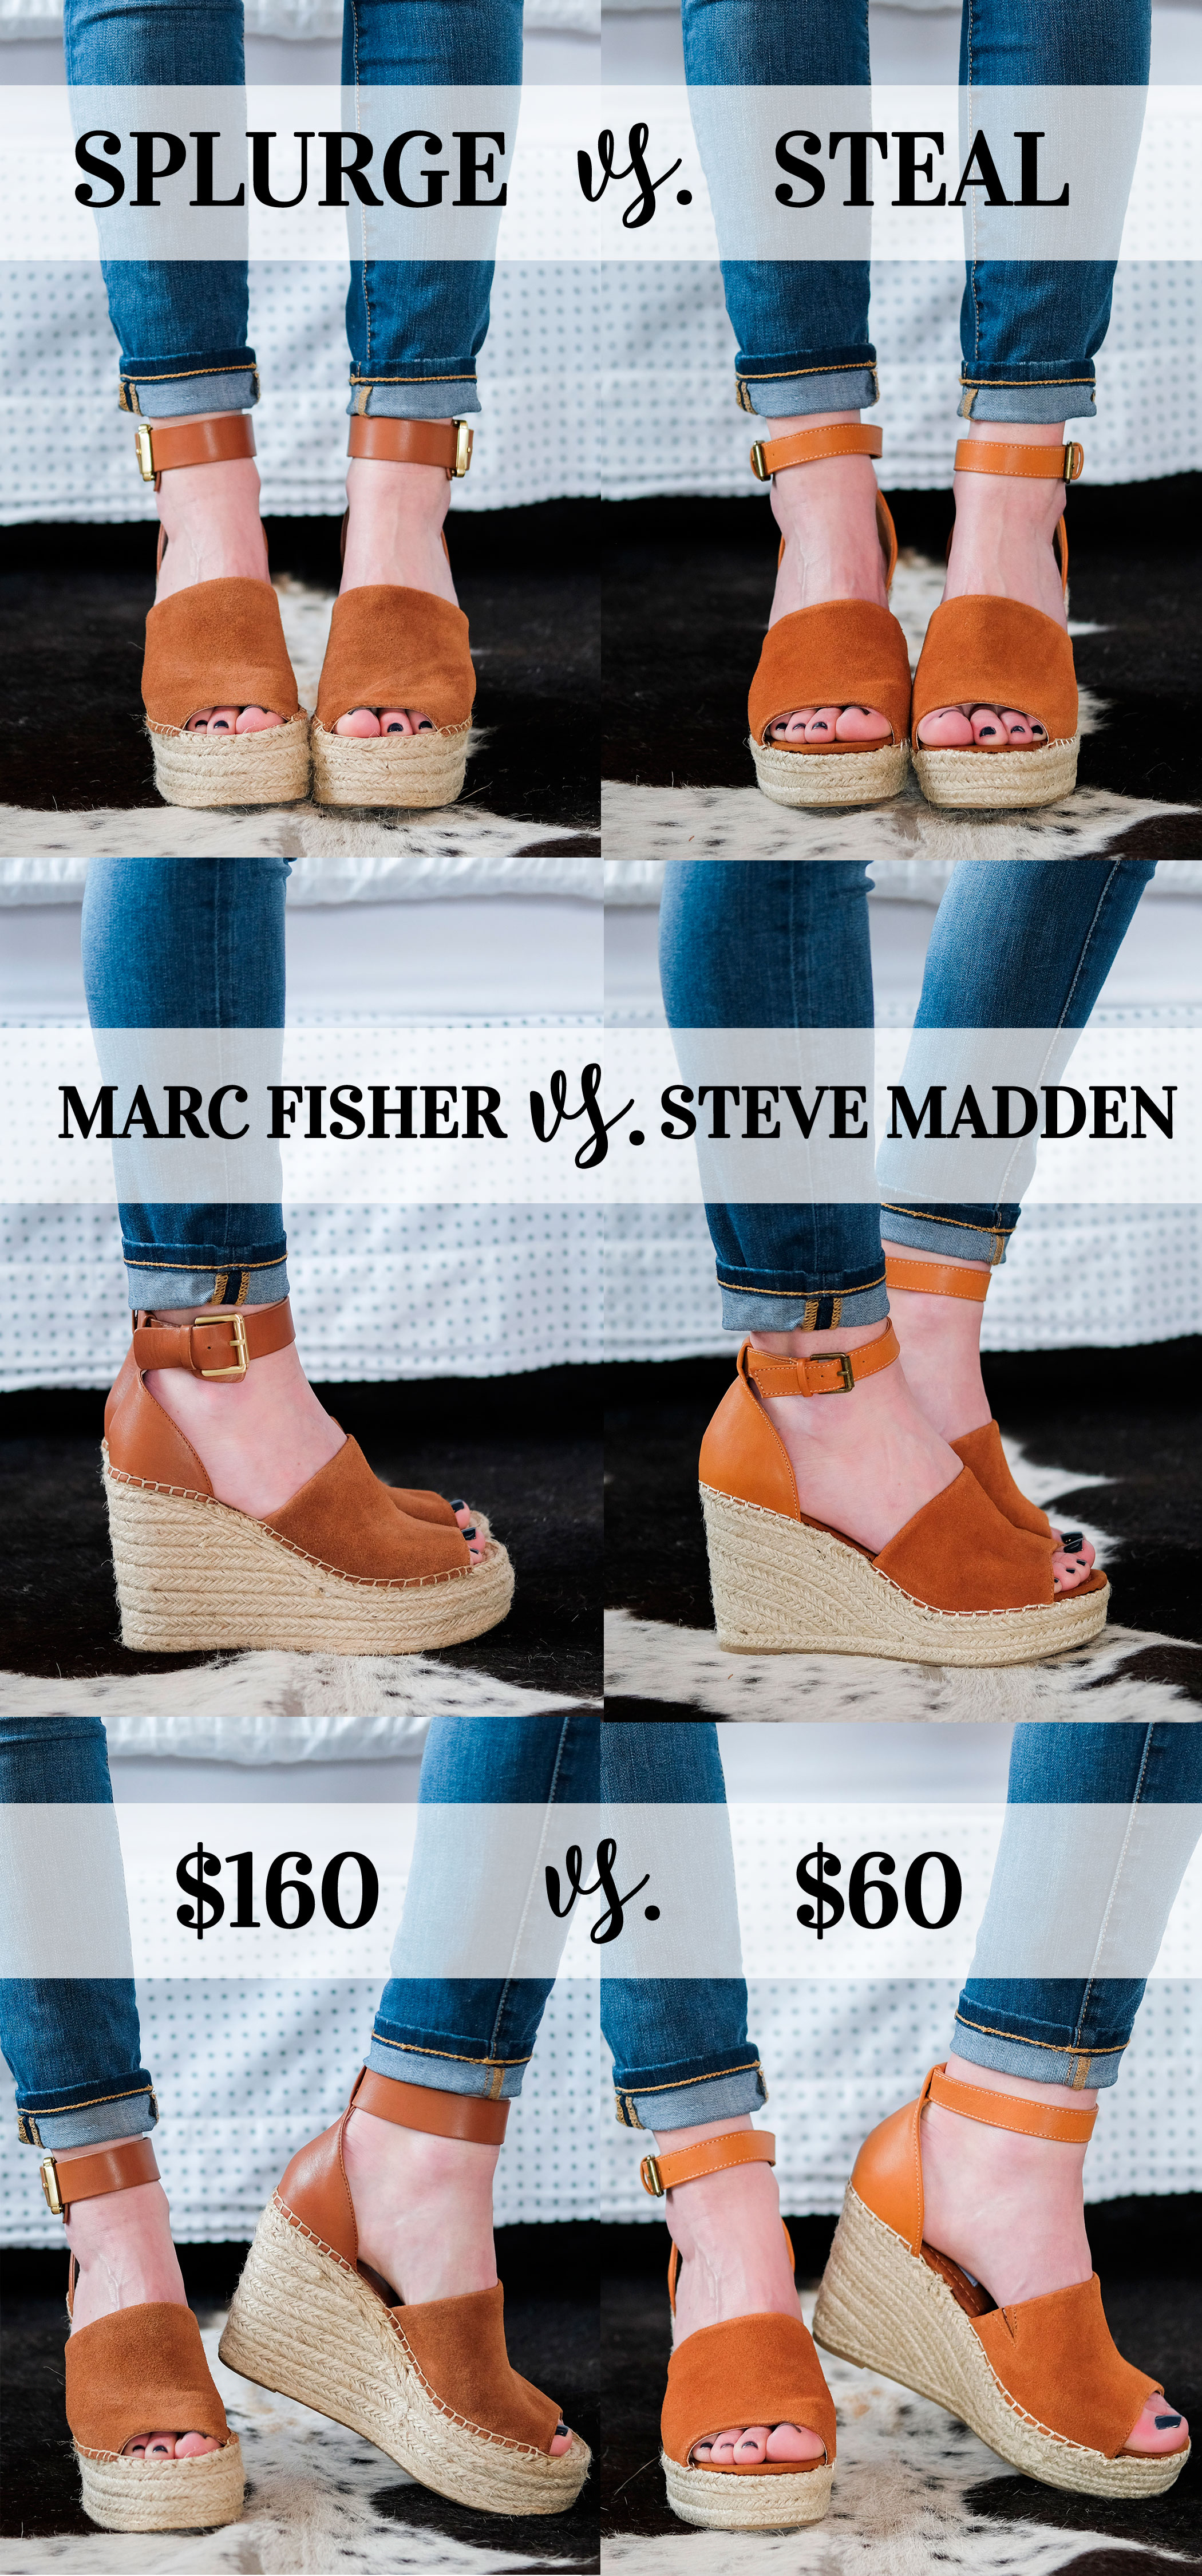 3c140dbc32e MARC FISHER 'ADALYN' DUPES BY STEVE MADDEN FOR $60! — Me and Mr. Jones